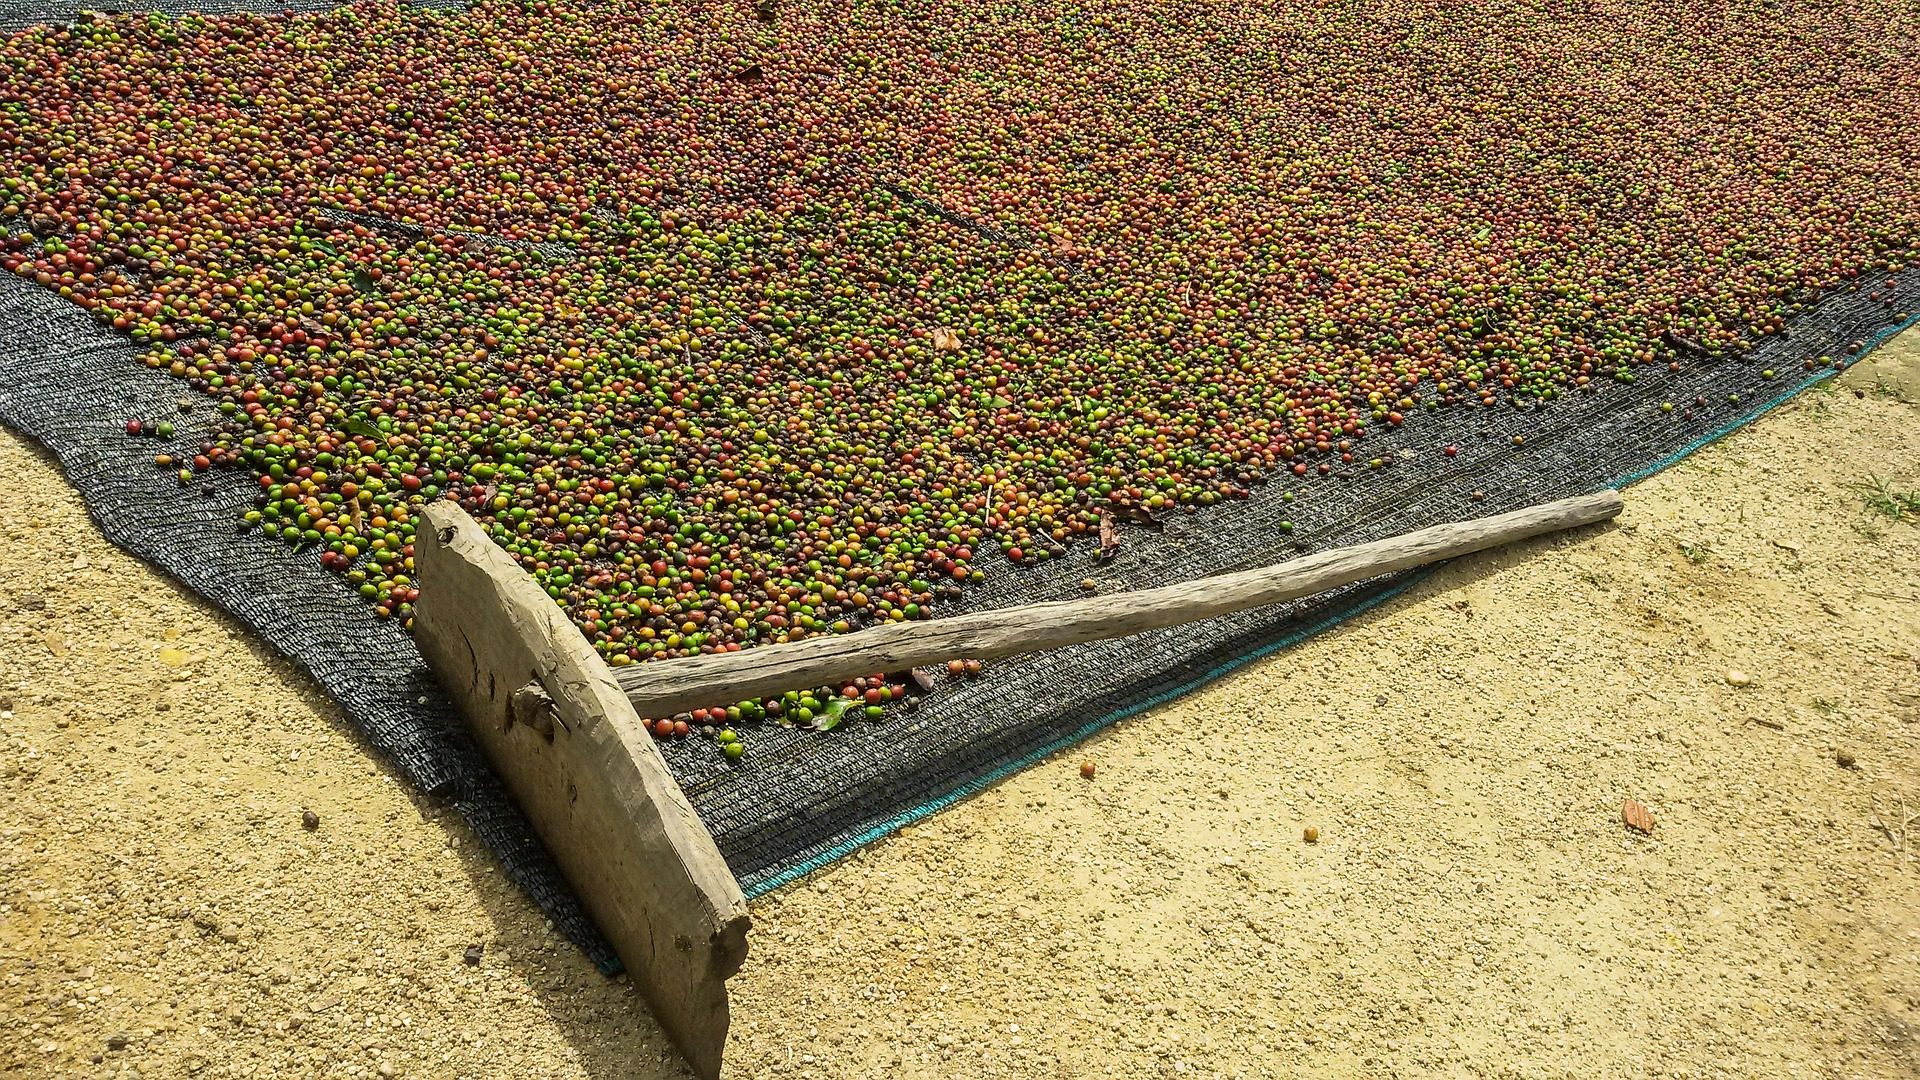 drying coffee beans on the ground